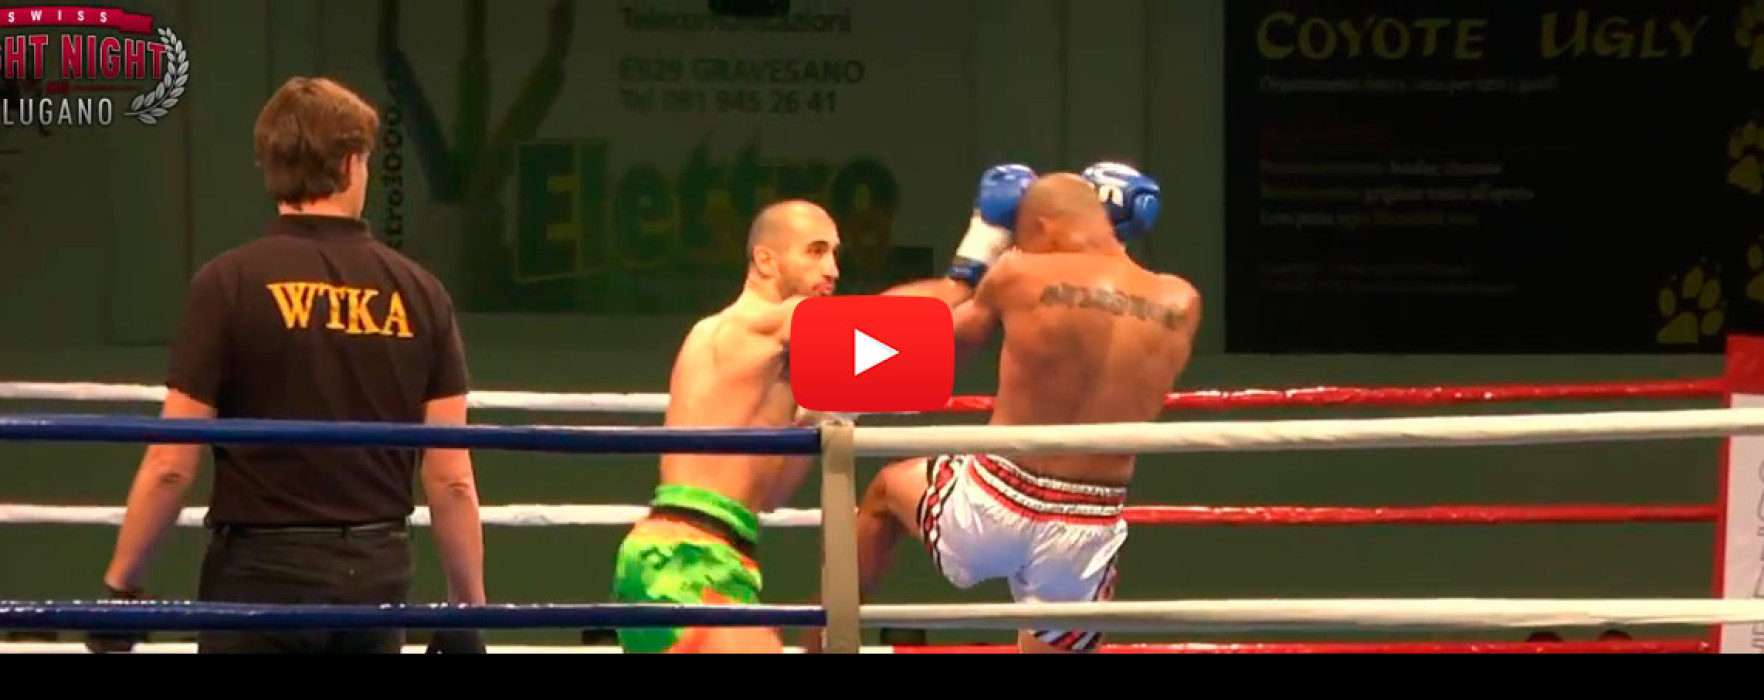 Video: Armen Petrosyan vs Edy Ruiz & Silvia la Notte vs Fanny Ramos – Swiss Fight Night